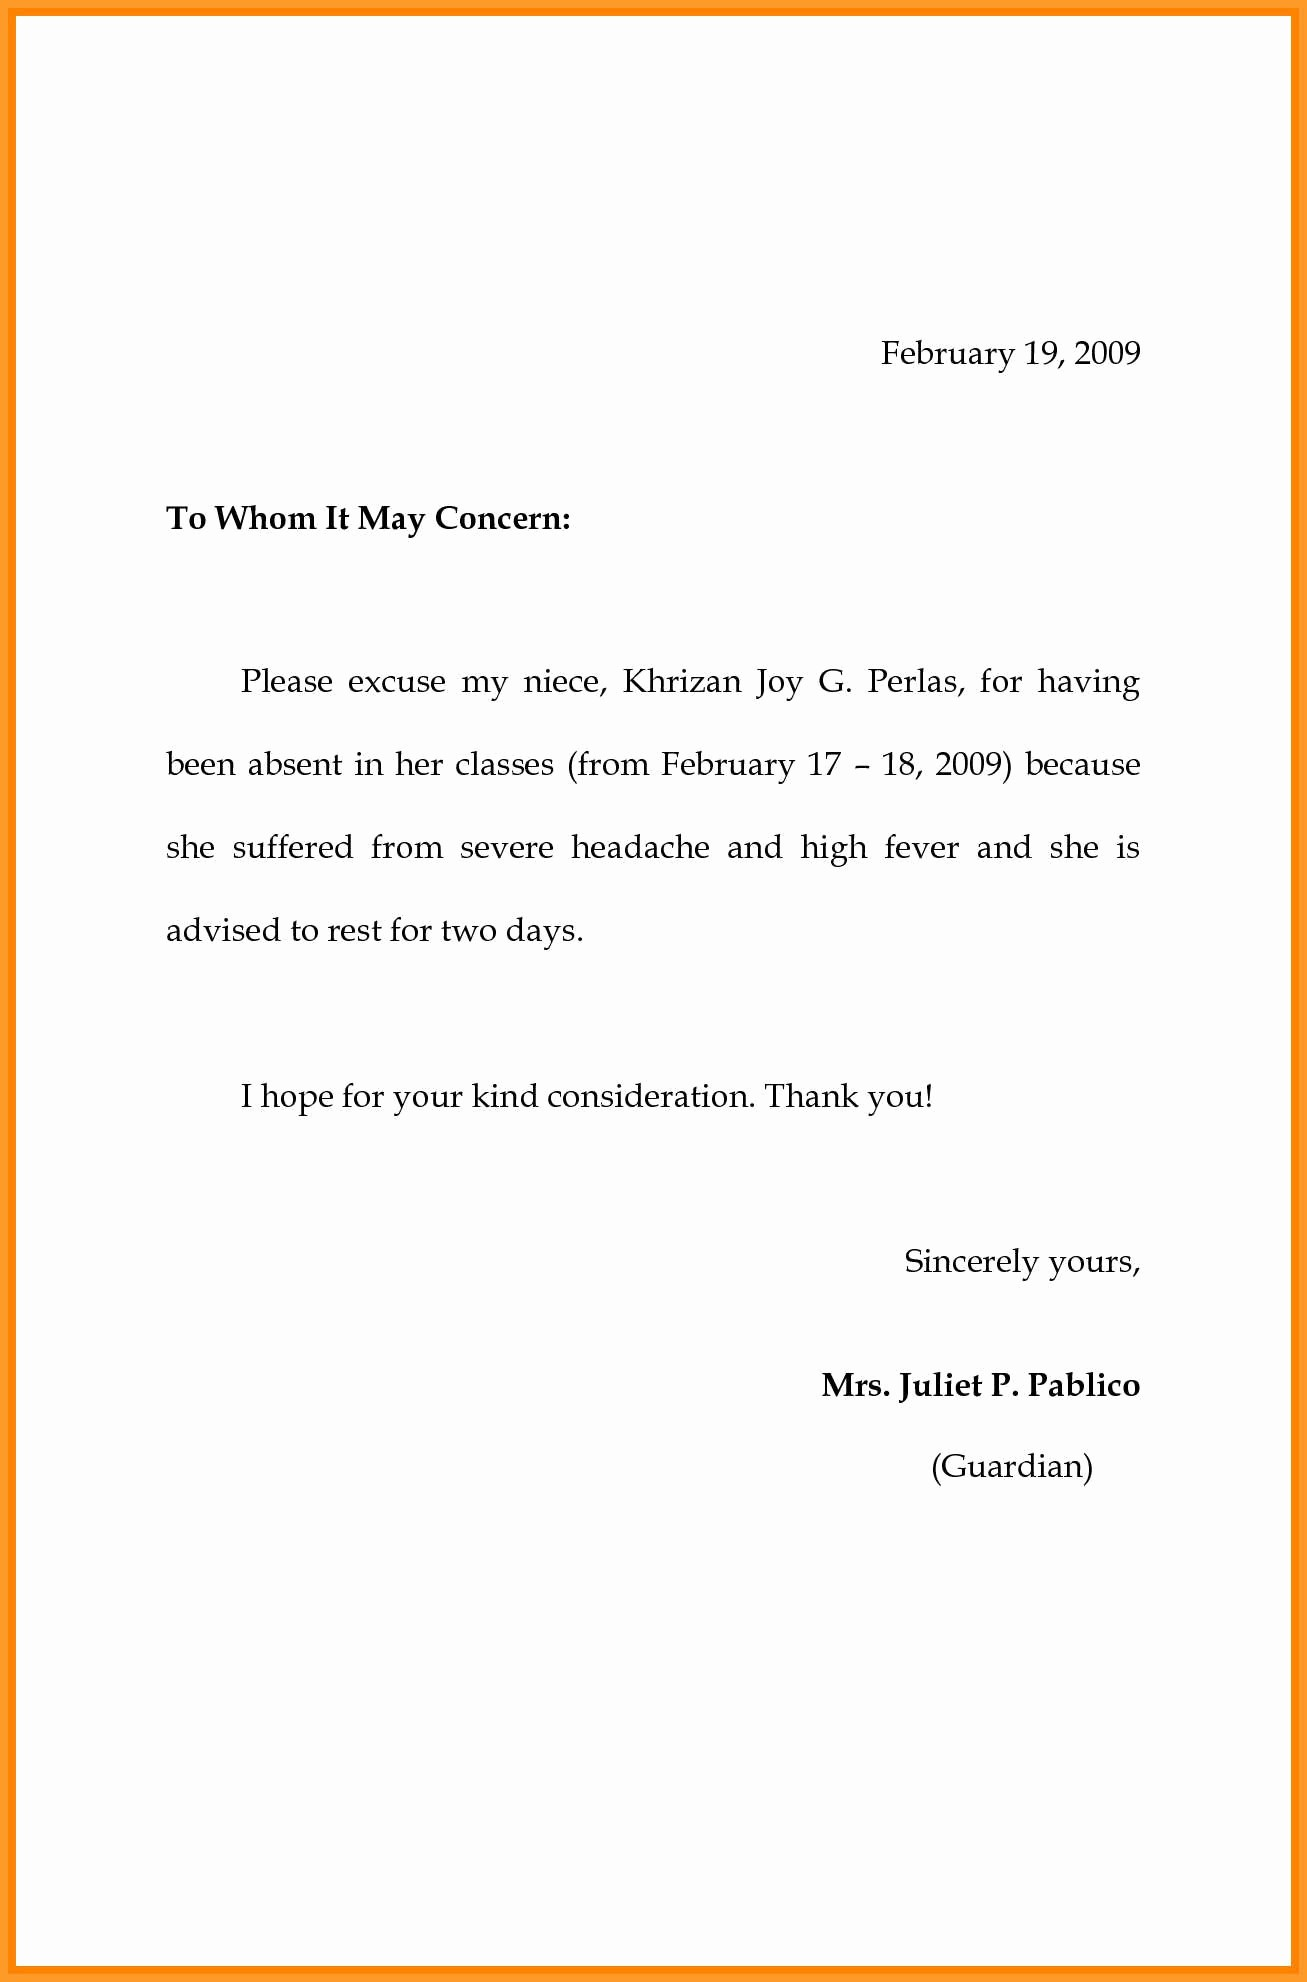 School Absence Excuse Letter Template Unique 4 5 Sample Of Absence Letter to School